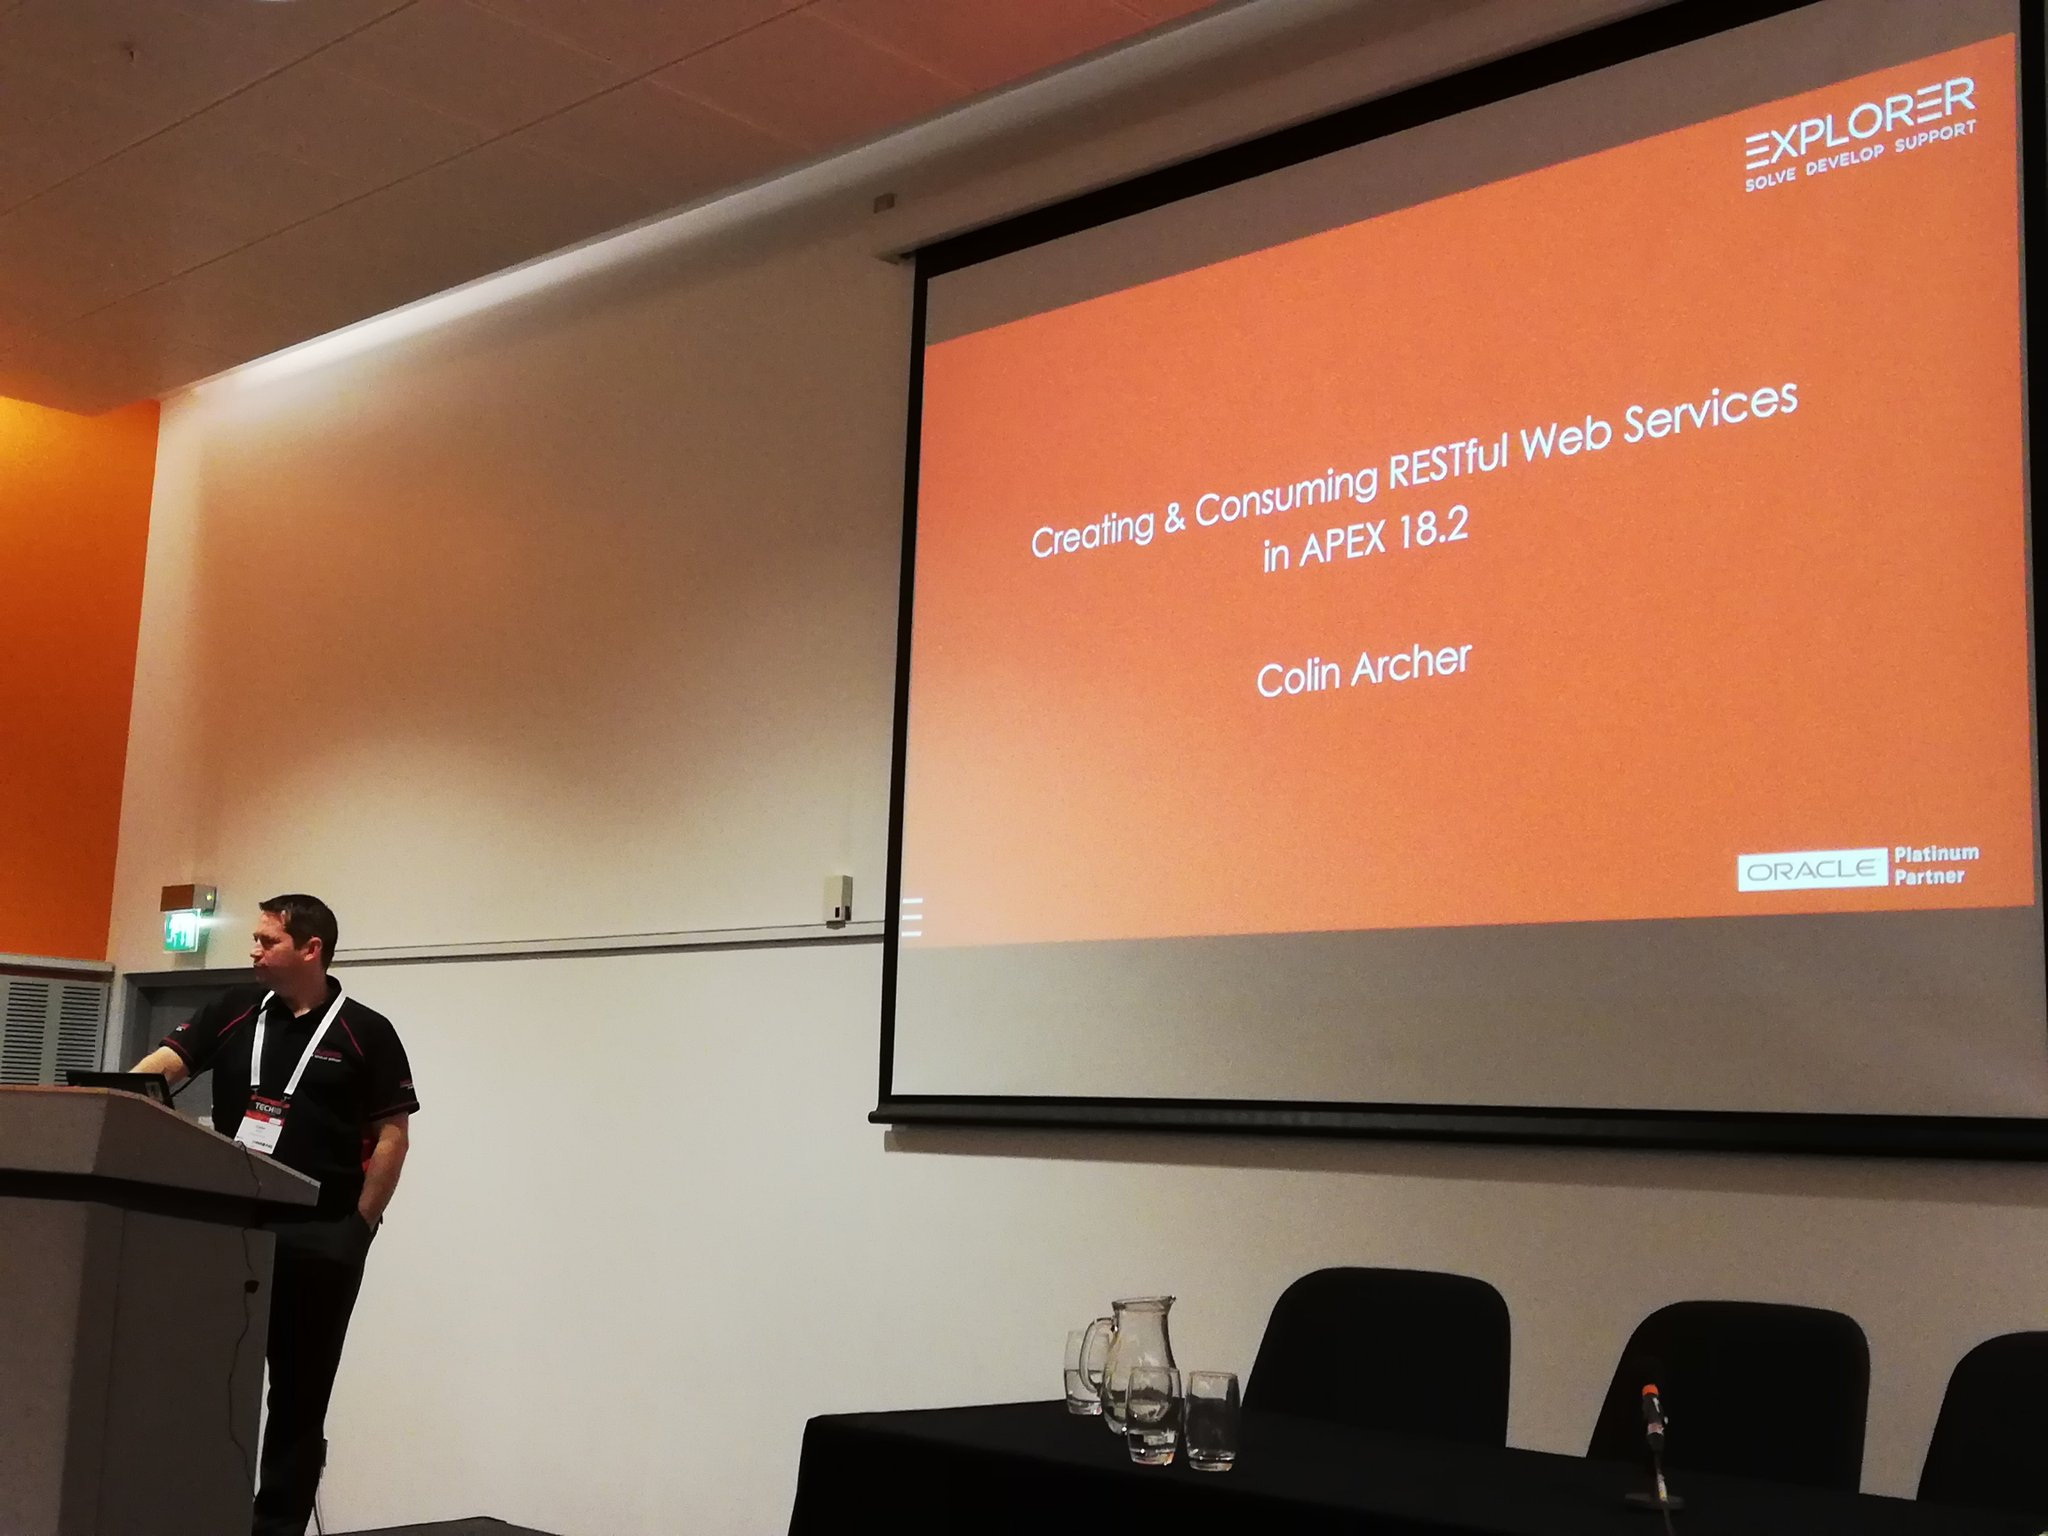 In a couple of minutes @carcher73 starting with a content filled session on RESTful Web services in #orclapex #ukoug_tech18 https://t.co/qxwuIbk4nM